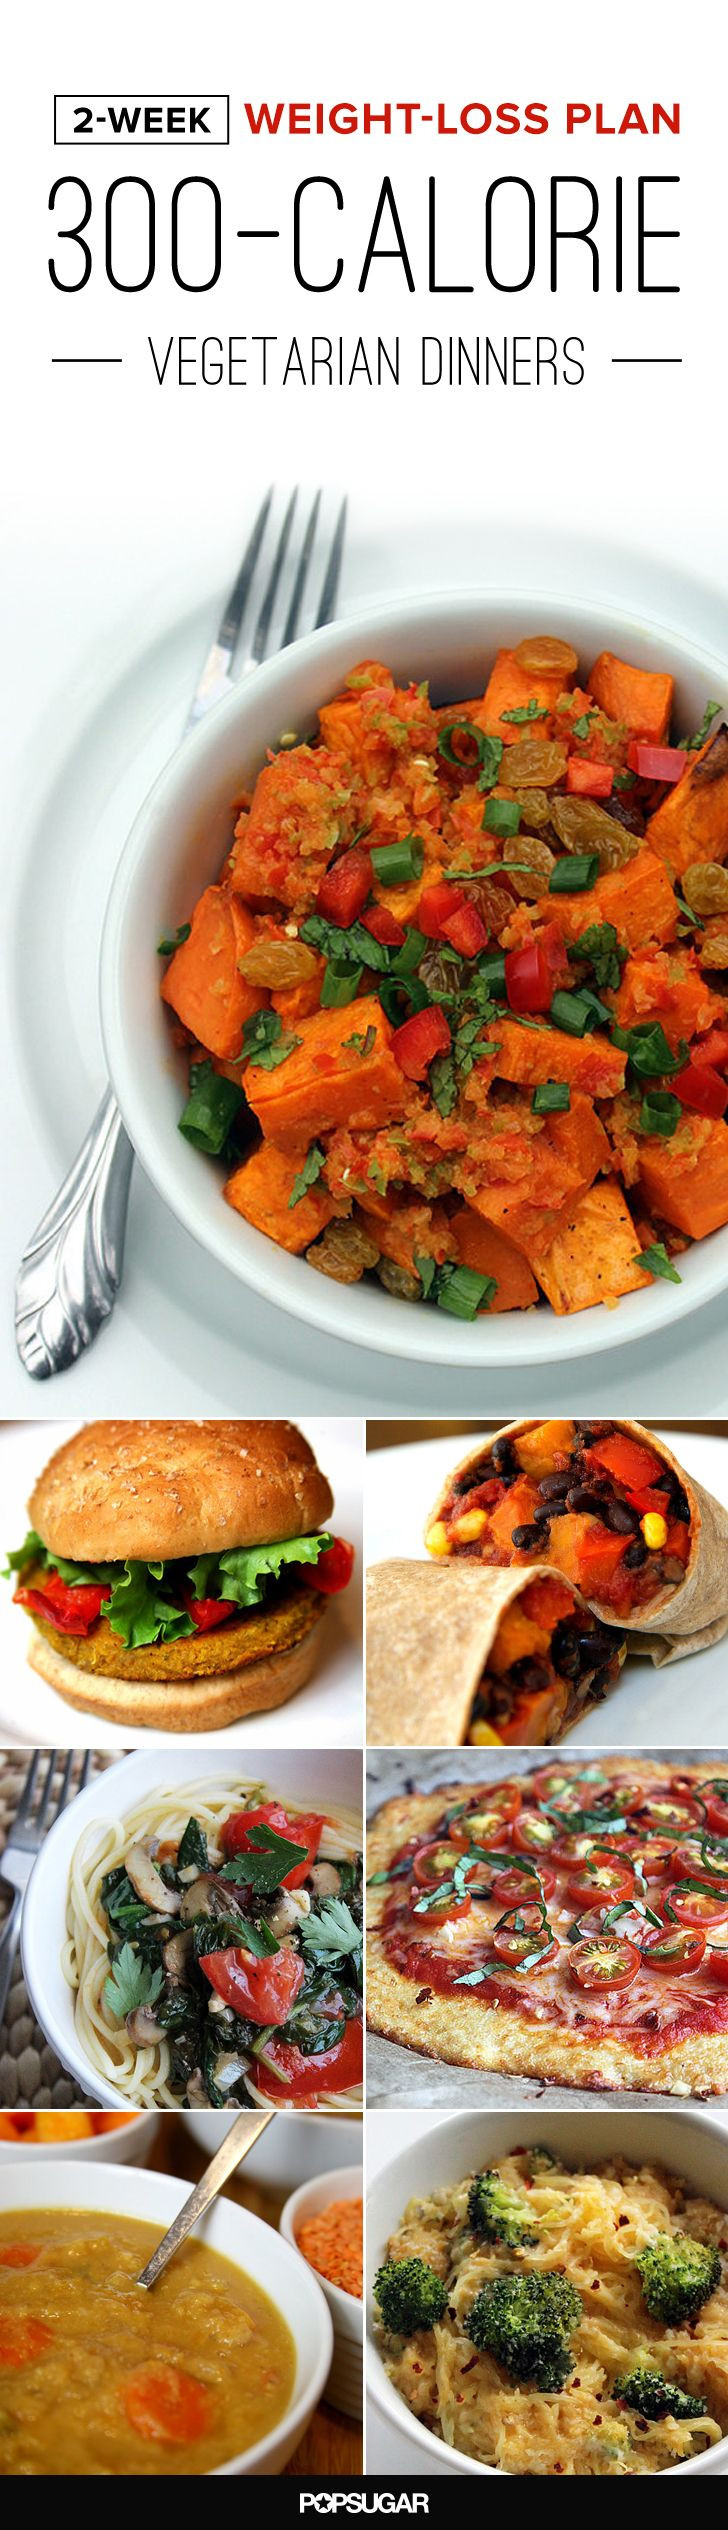 Healthy Vegan Recipes For Weight Loss  2 Week Weight Loss Plan Ve arian Dinners Under 300